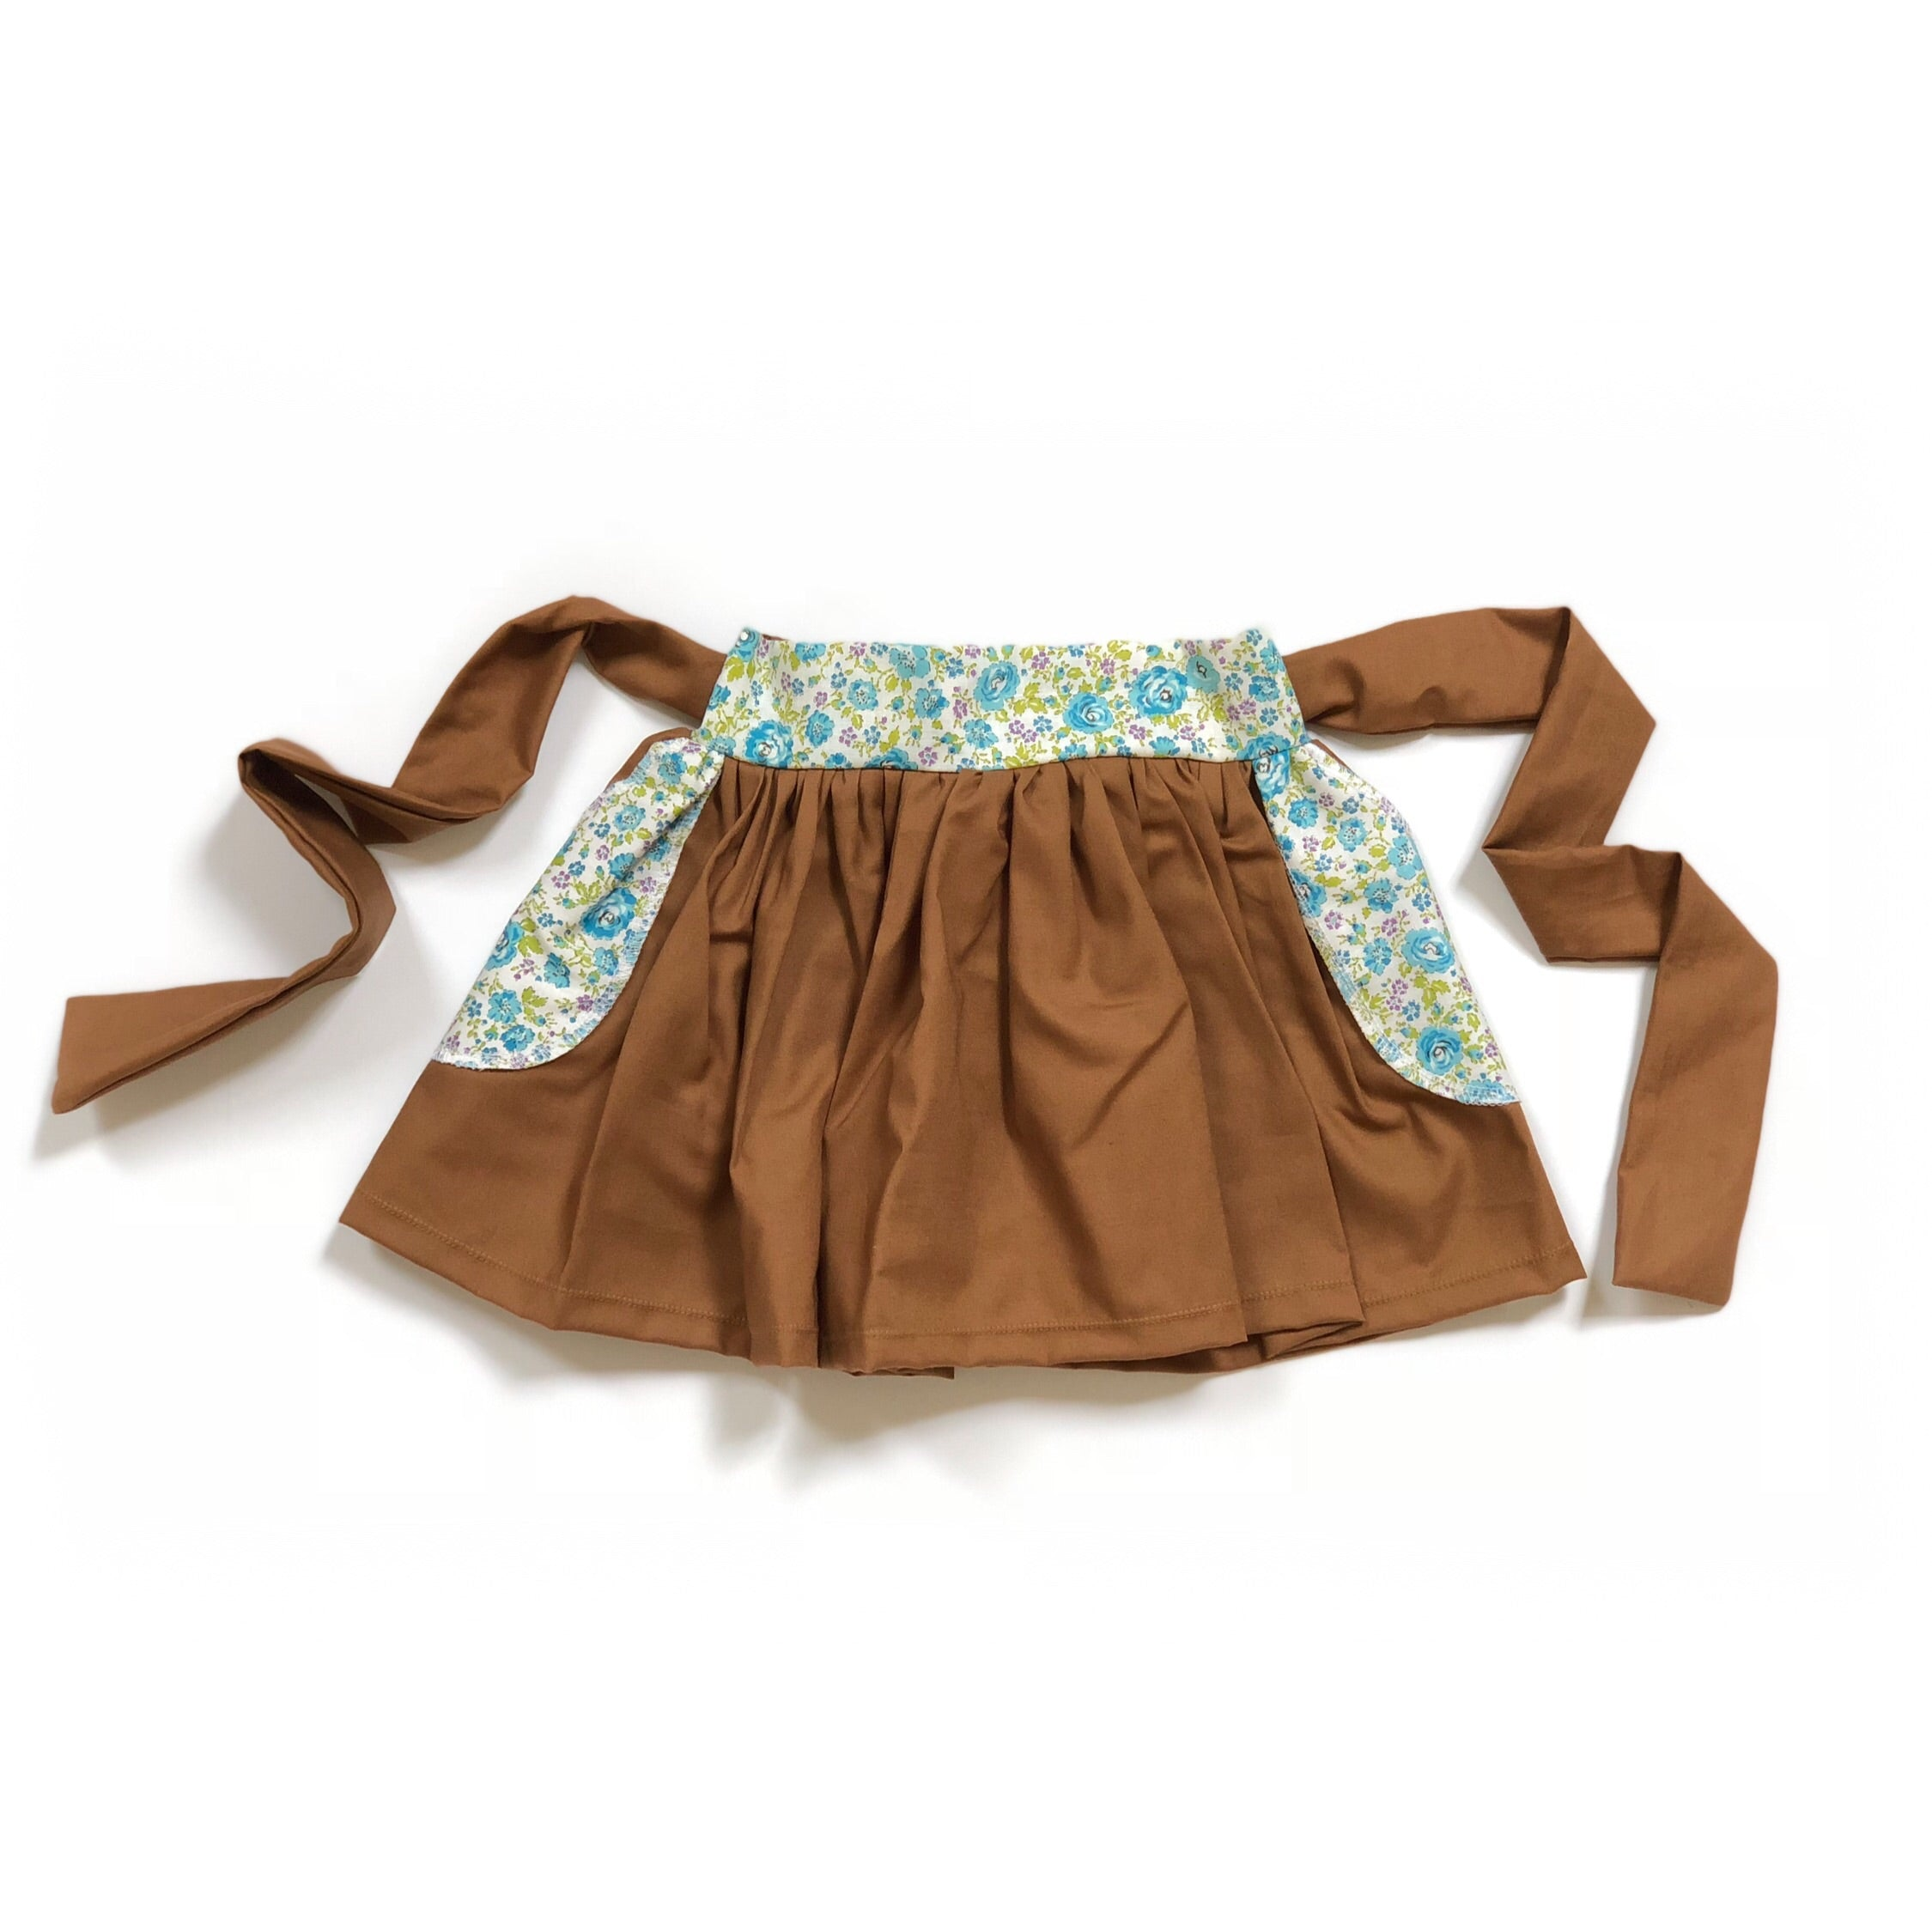 GOLDY BROWN & Vintage Floral High Waisted Bow Skirt